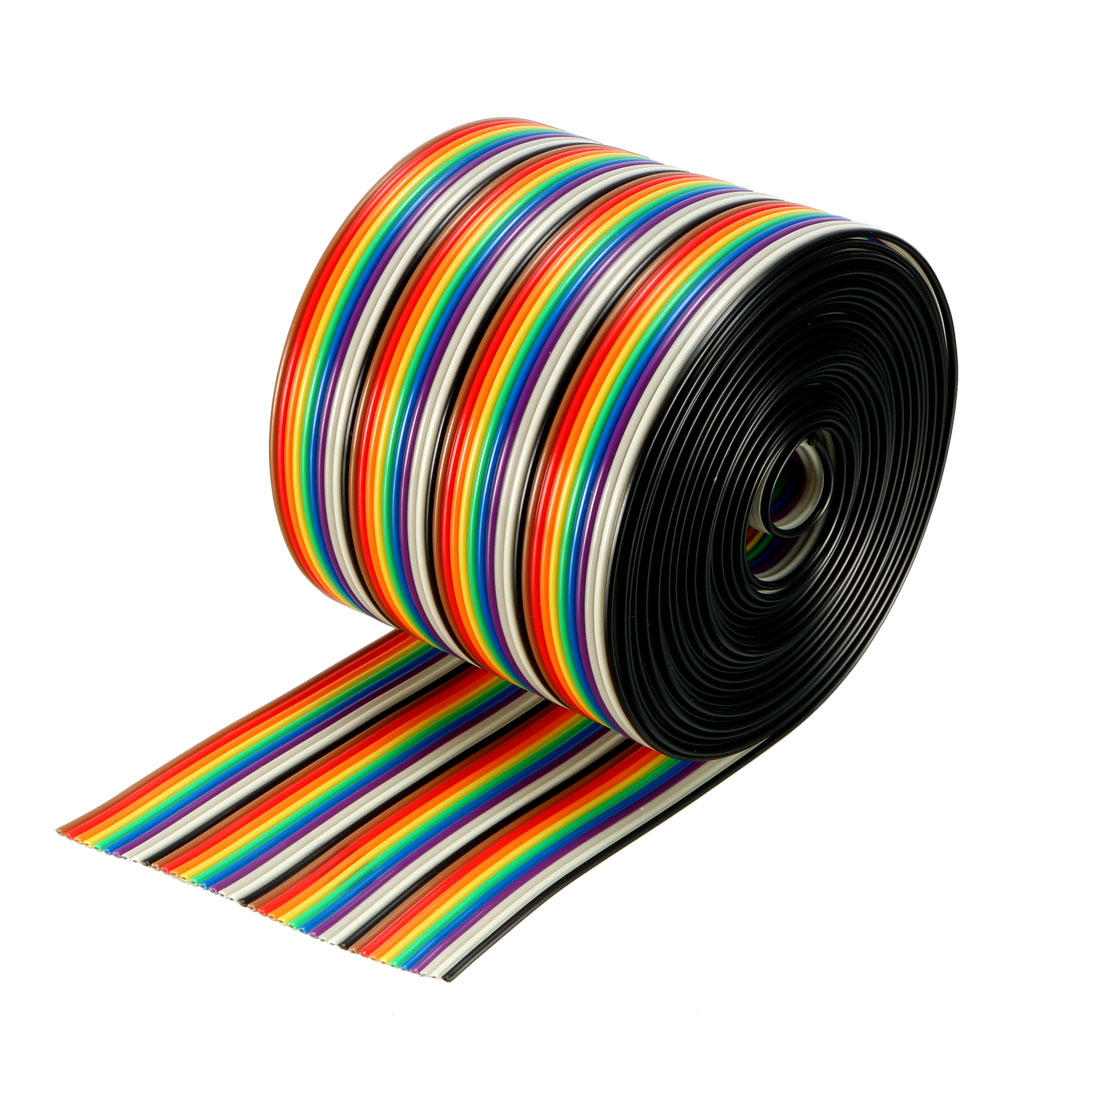 40P Jumper Wire 1.27mm Pitch Ribbon Cable Breadboard DIY 3 Meters Long - image 4 de 4